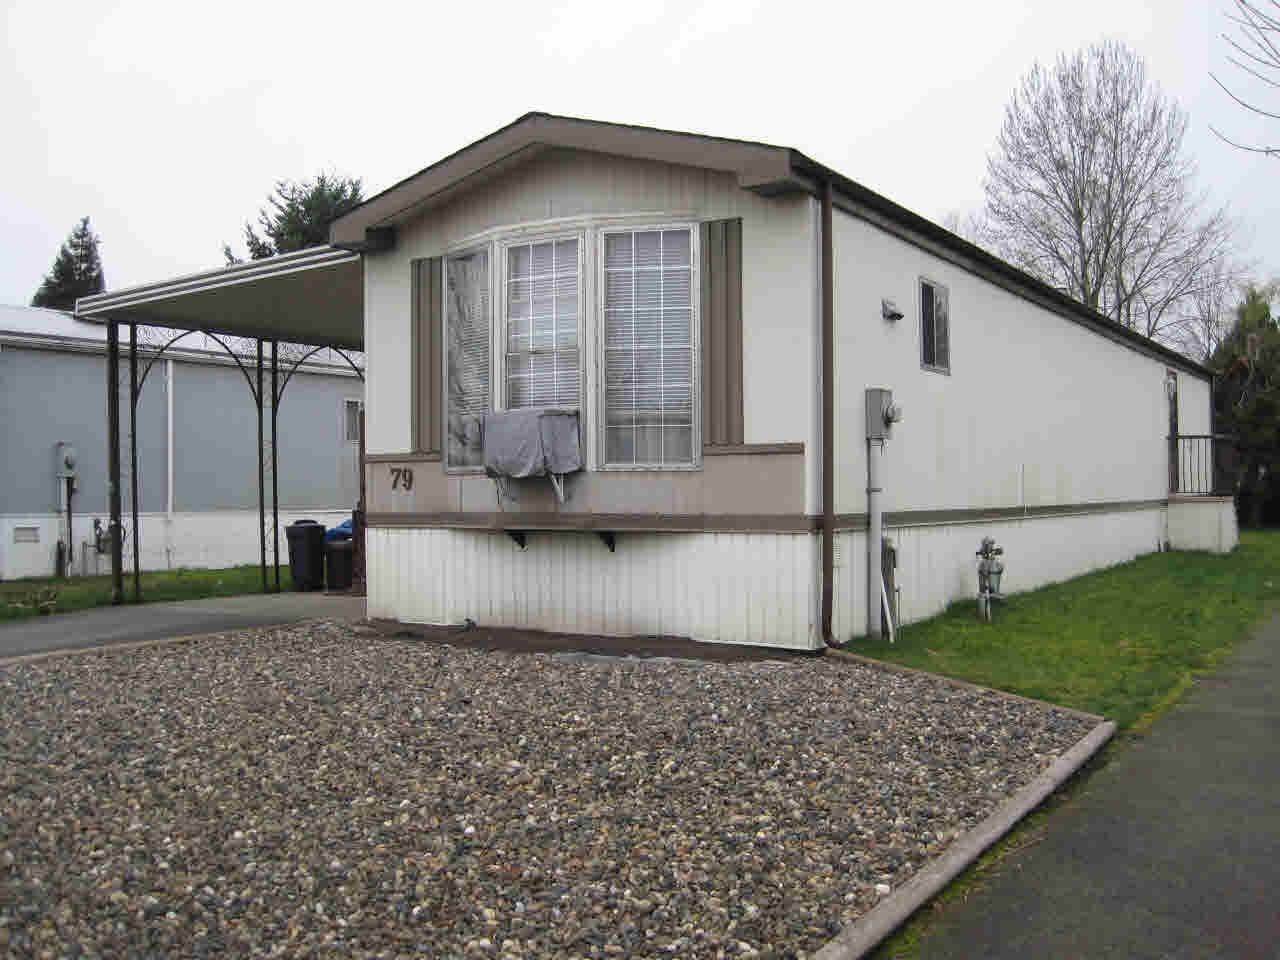 Main Photo: 79 145 KING EDWARD STREET in : Maillardville Manufactured Home for sale : MLS®# V816945